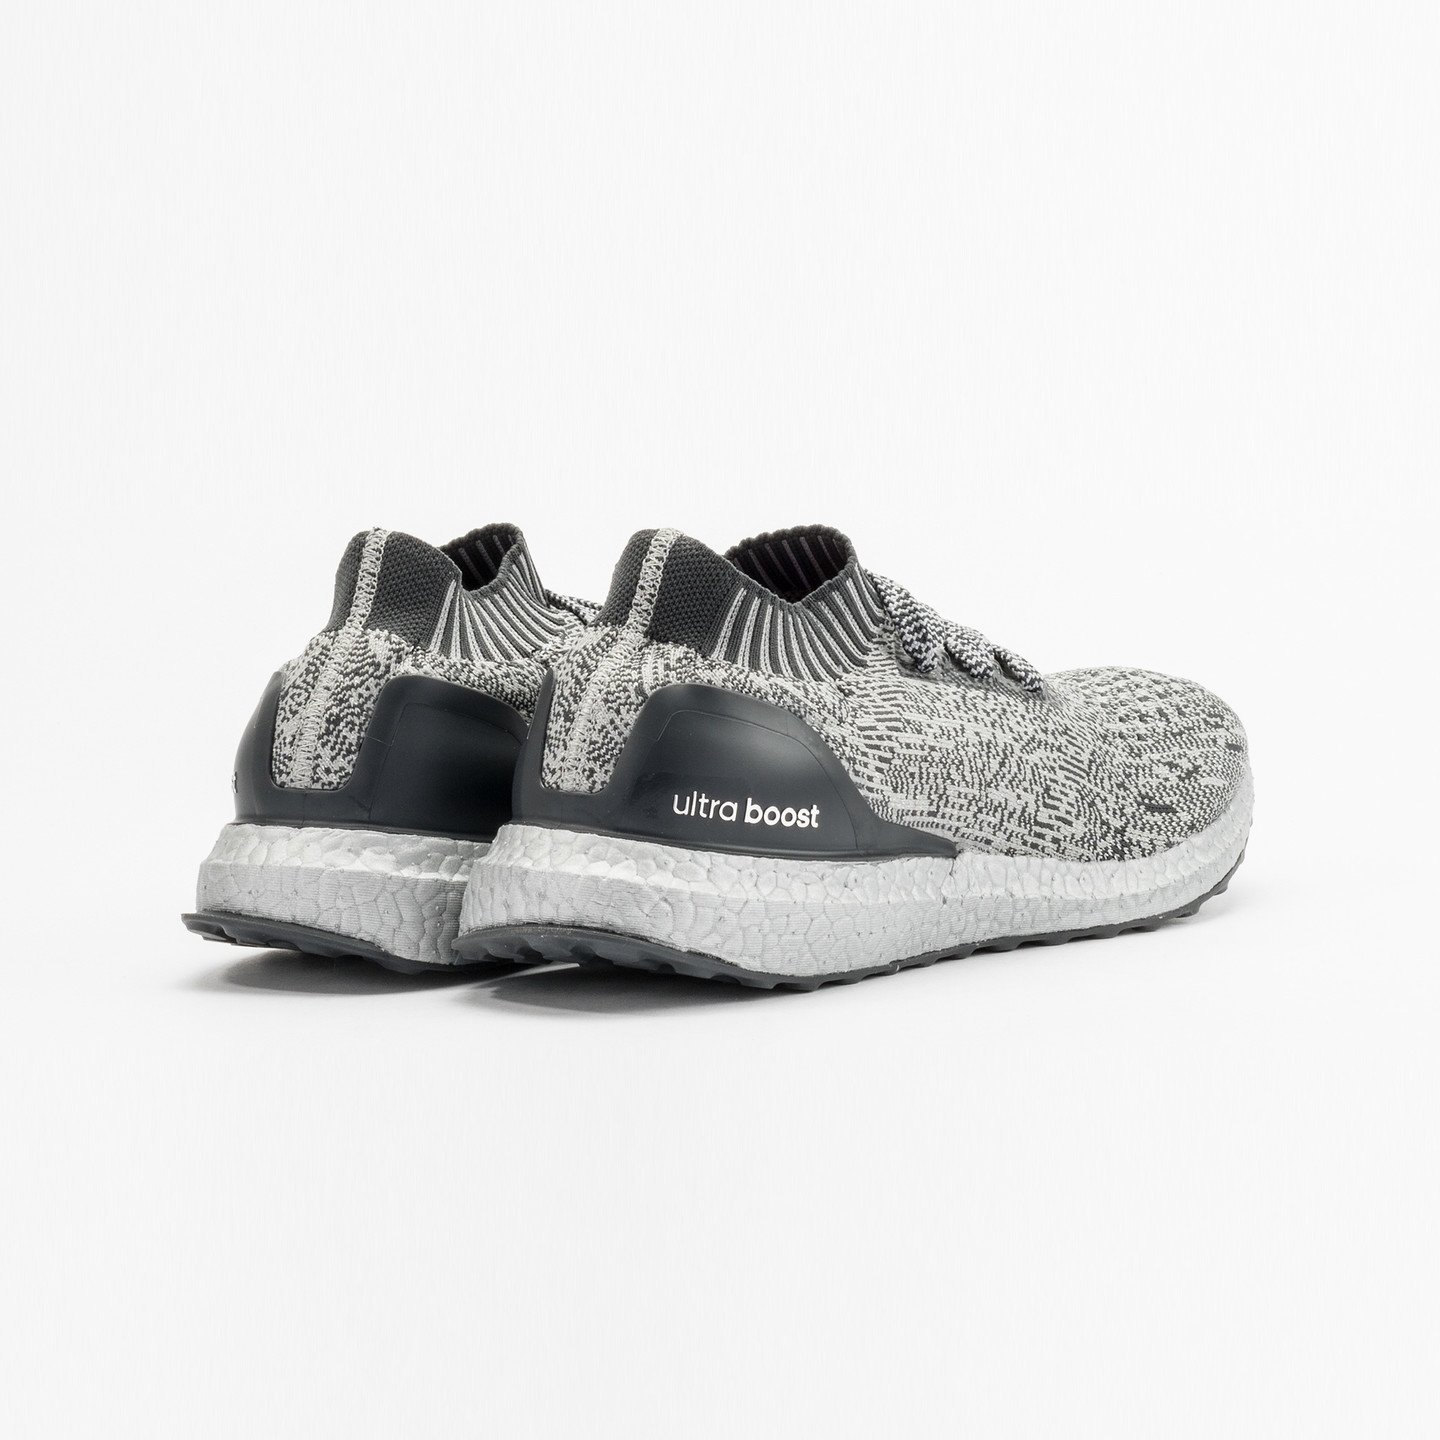 Adidas Ultra Boost Uncaged 'Super Bowl' Silver Grey BA7997-42